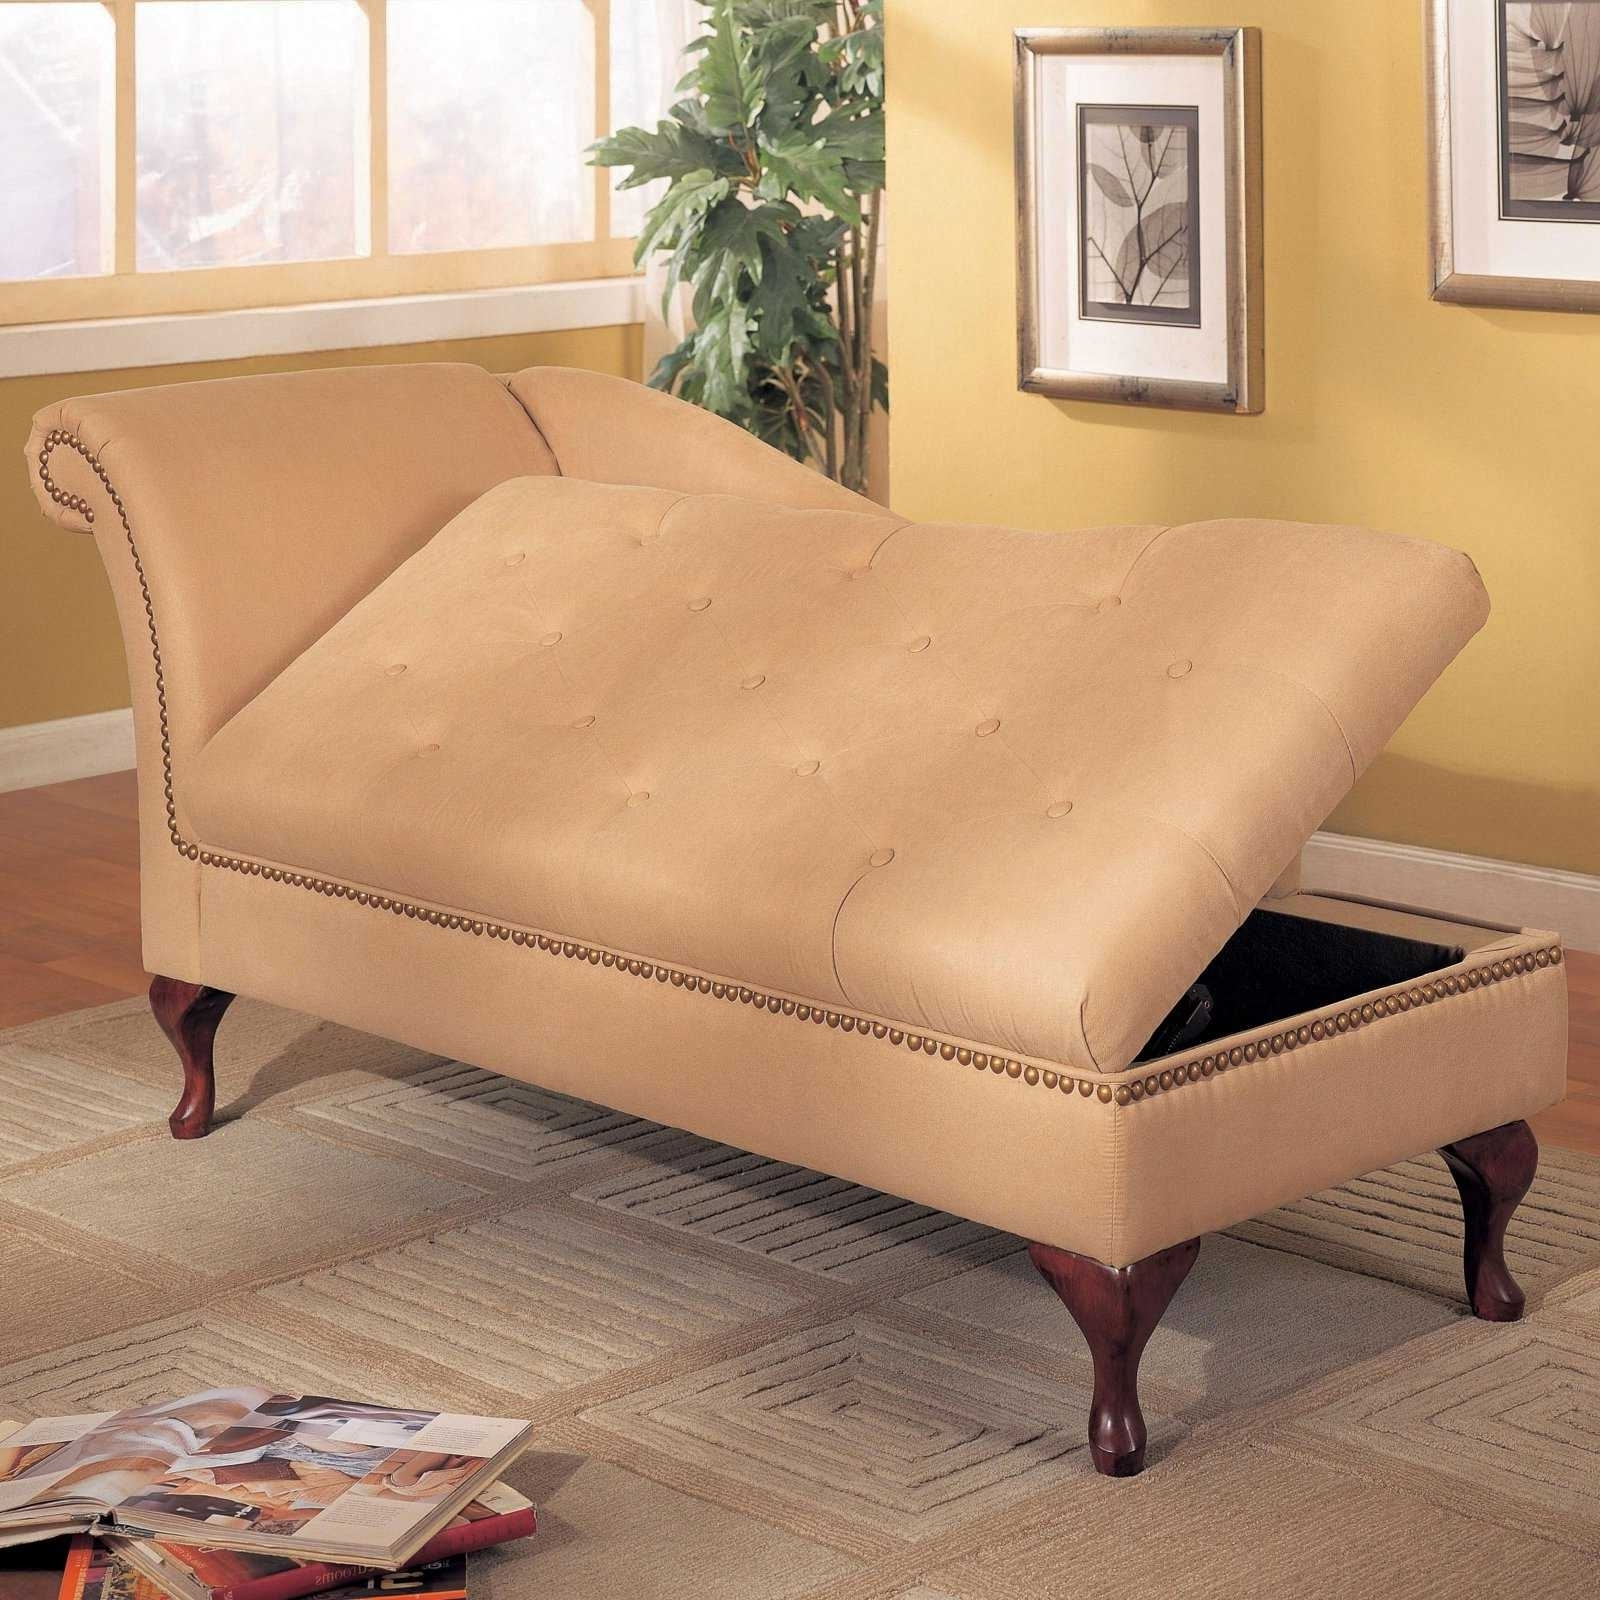 Indoor Chaise Lounge Chairs With Regard To Famous Lounge Chair : Outdoor White Leather Chaise Lounge Indoor Chaise (View 7 of 15)